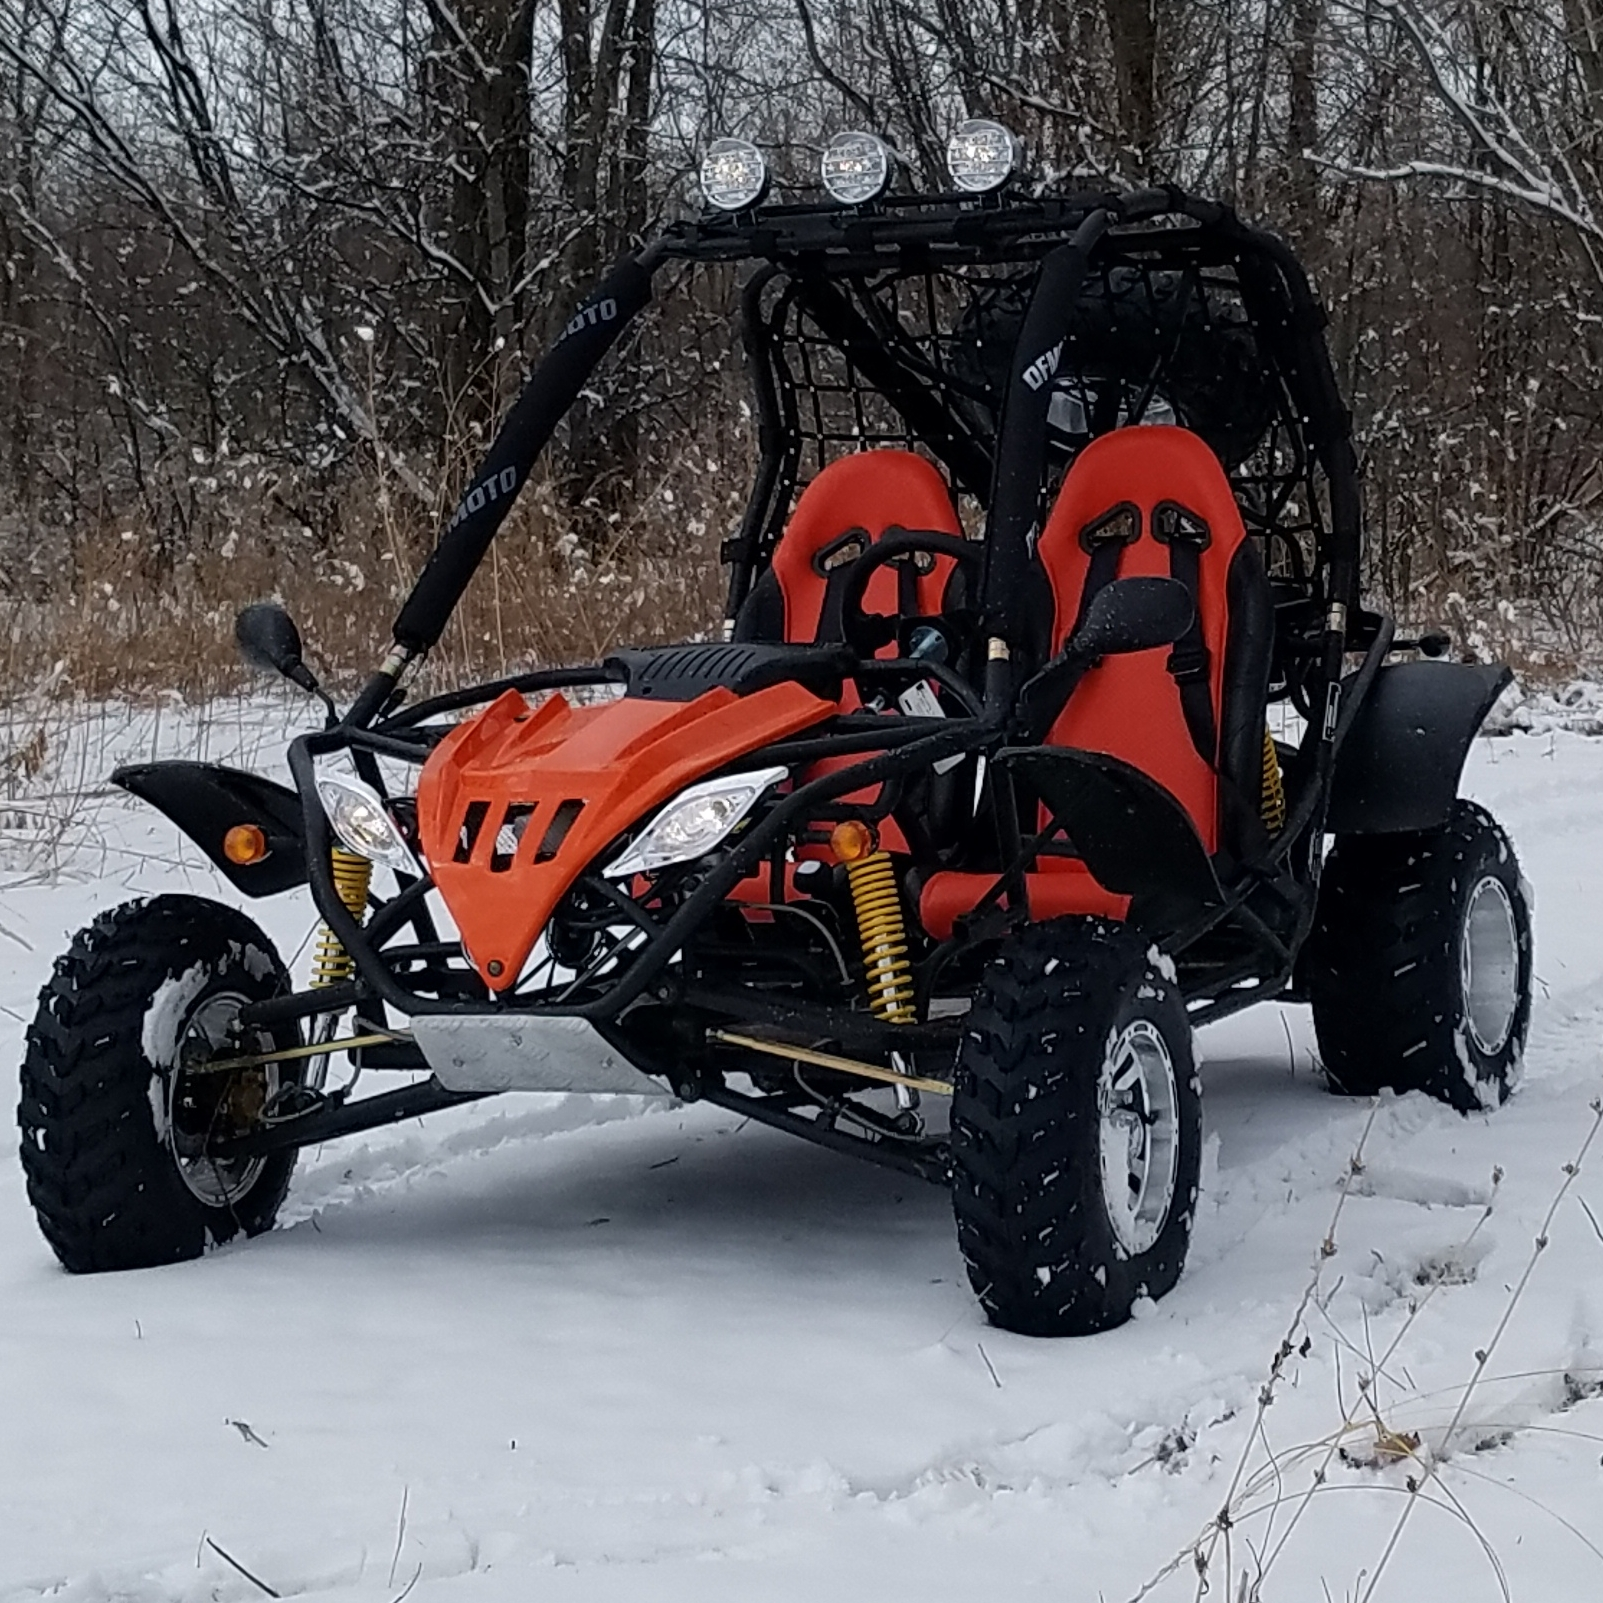 Dongfang Jaguar 200cc (newbie) - Buggy Depot | GY6 Advice Forum